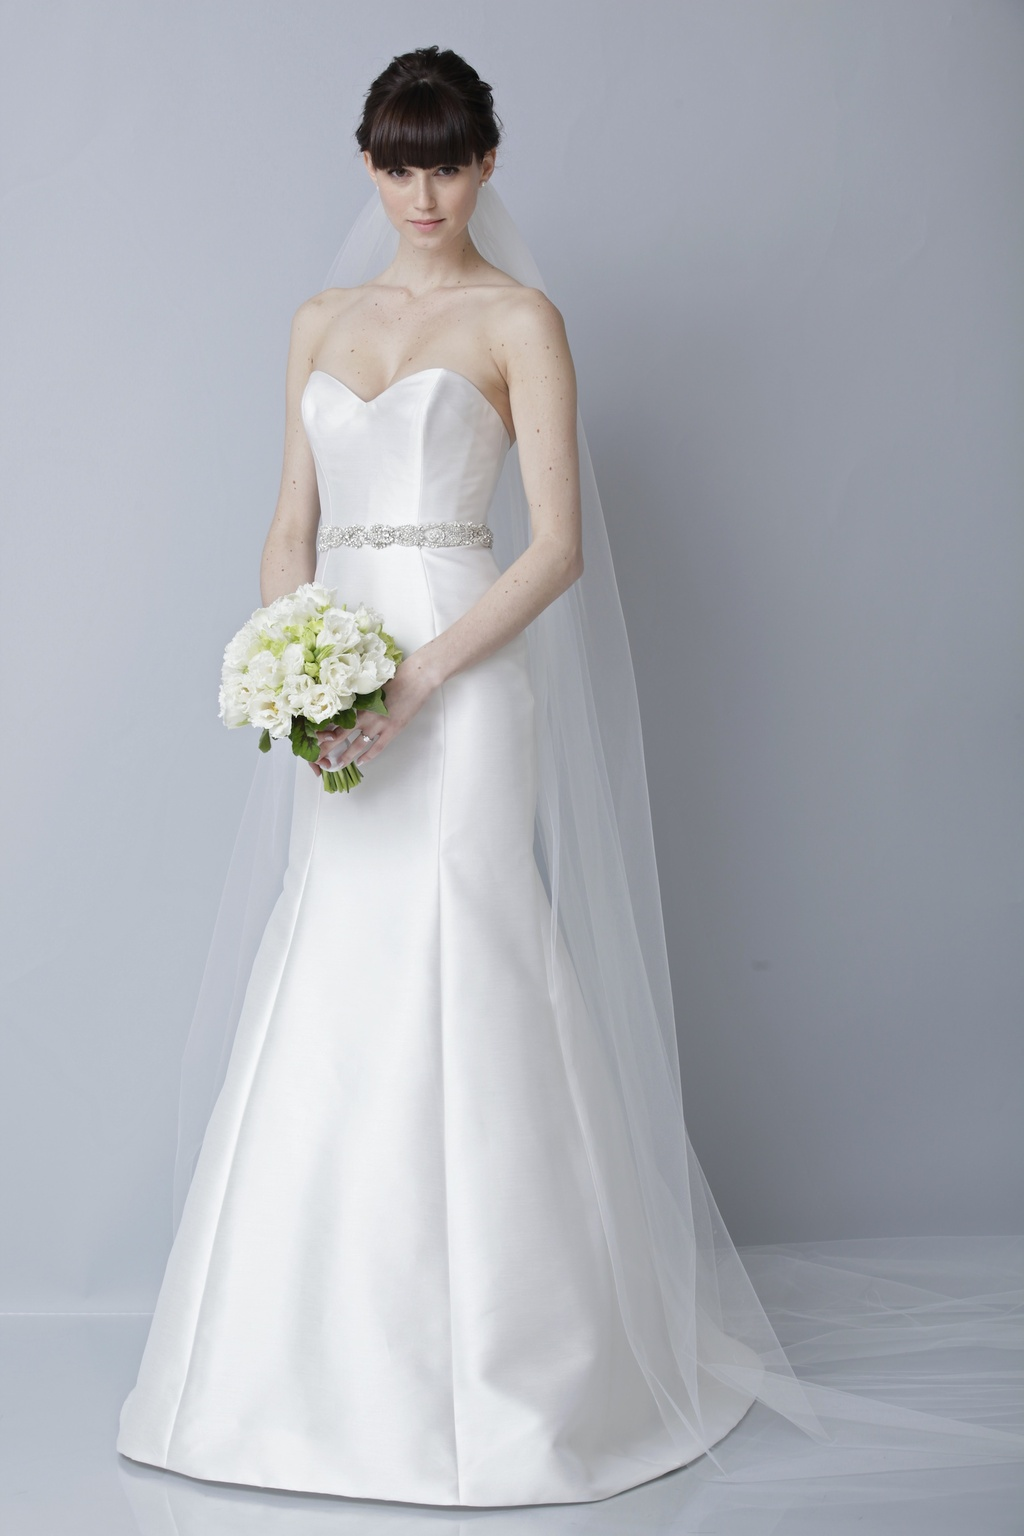 Magnificent Clearance Wedding Dresses Image - All Wedding Dresses ...